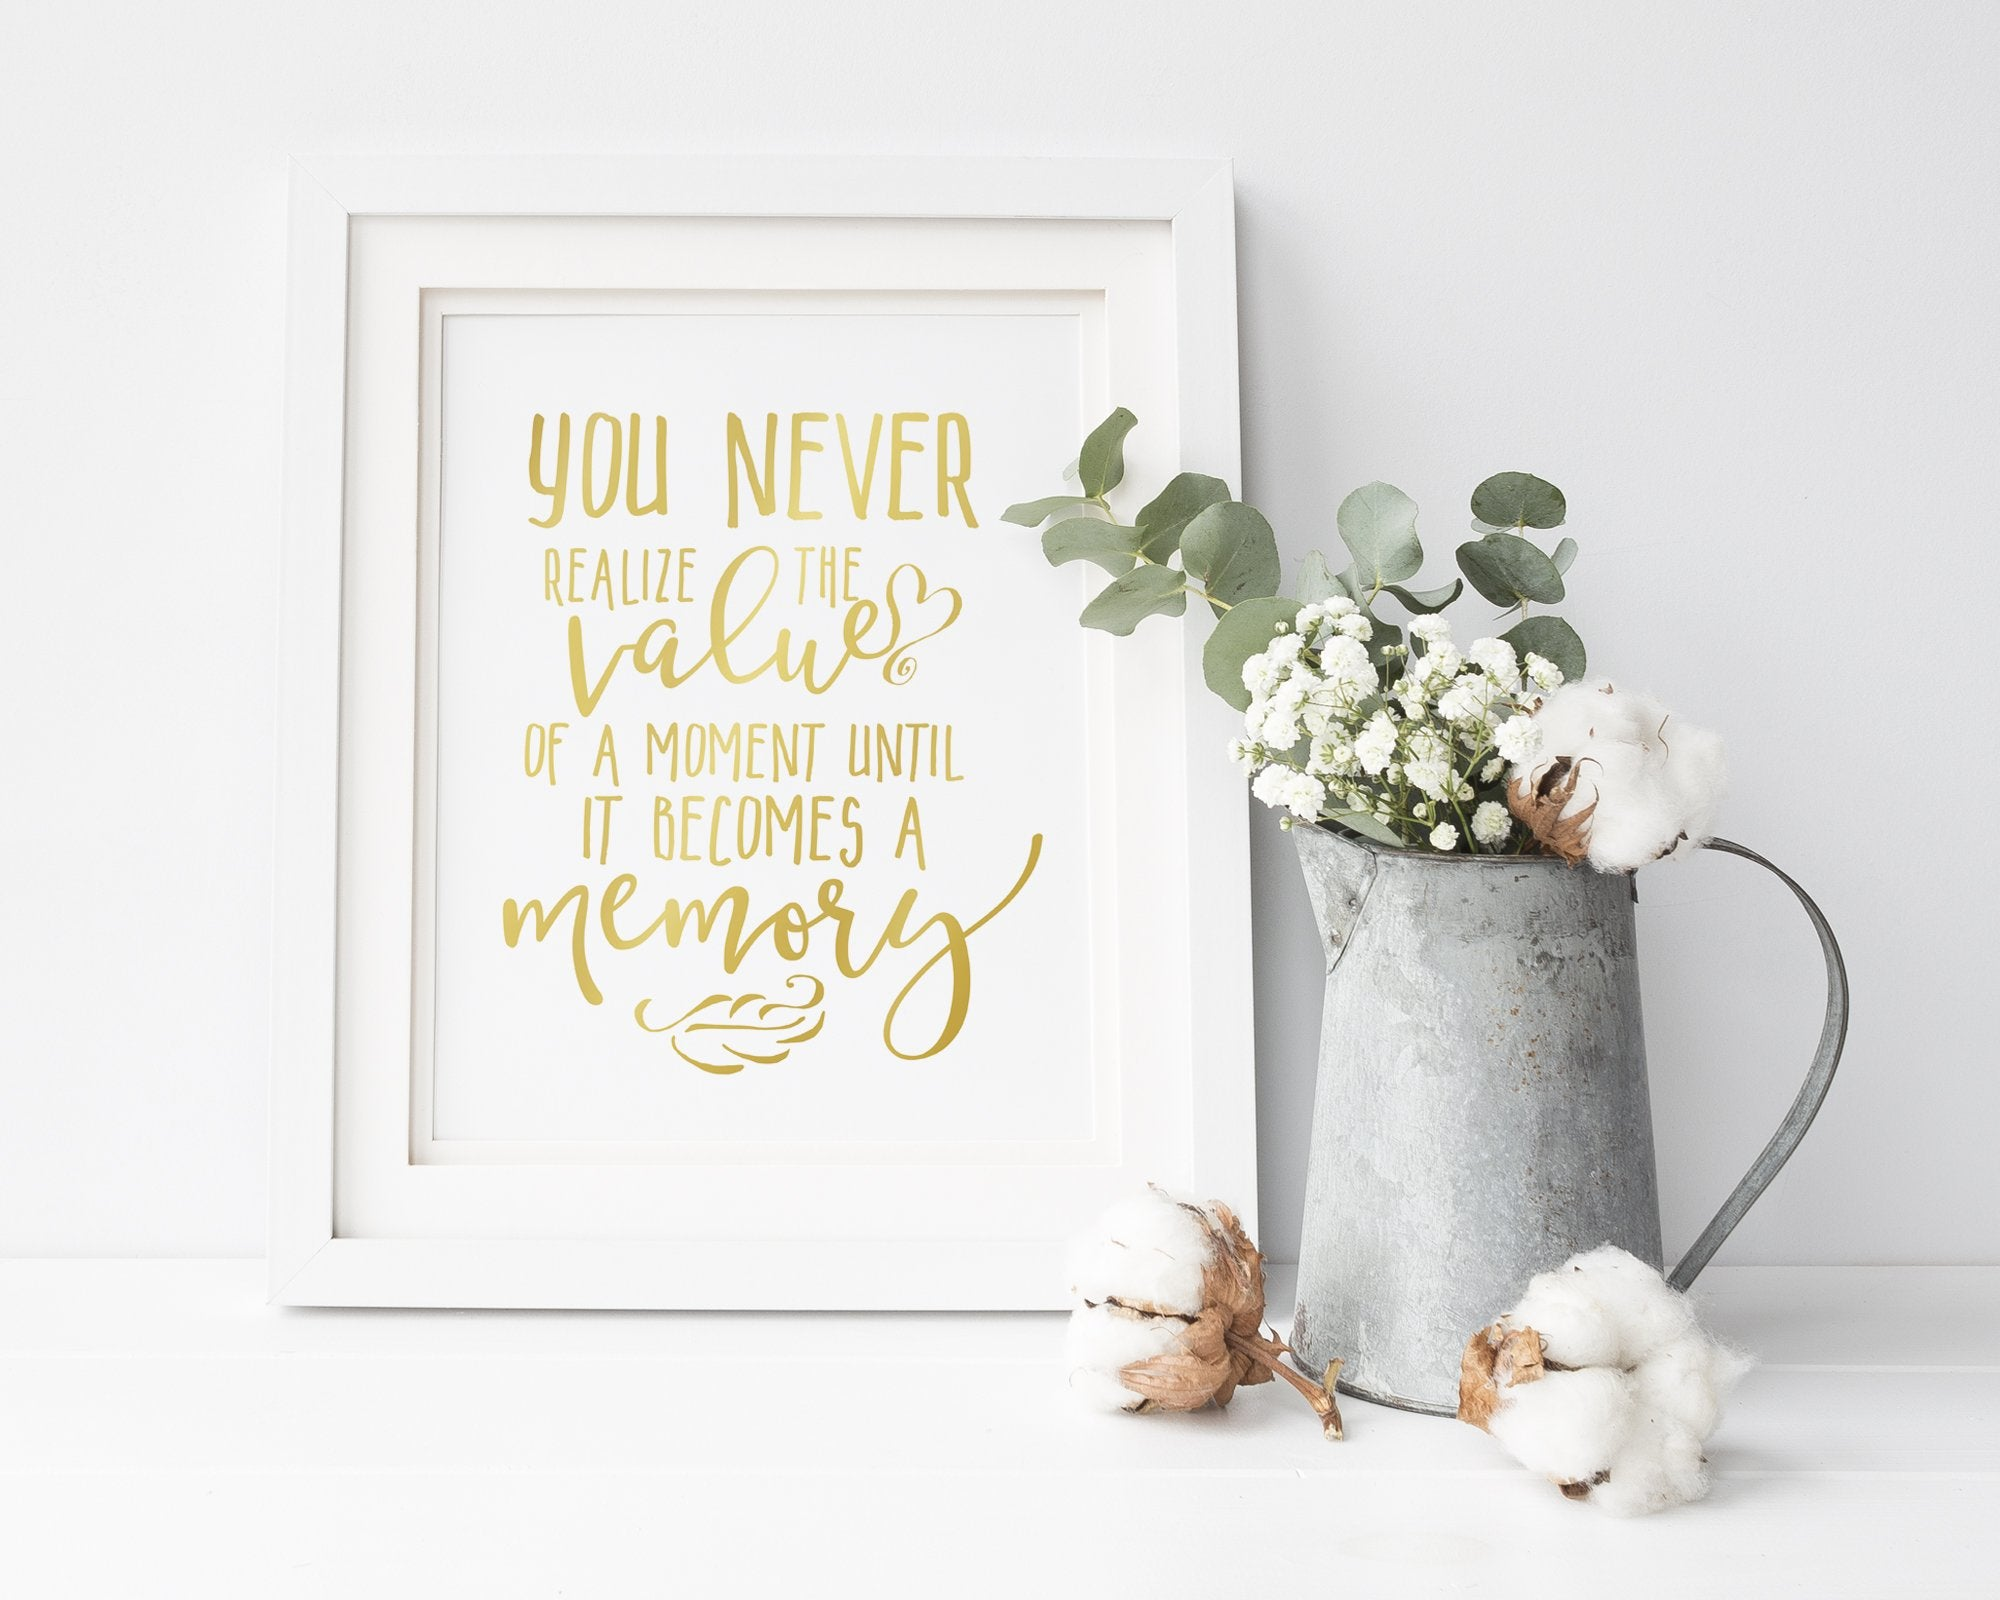 You Never Realize The Value Of A Moment | Free Printable Quote | Digital Wall Art